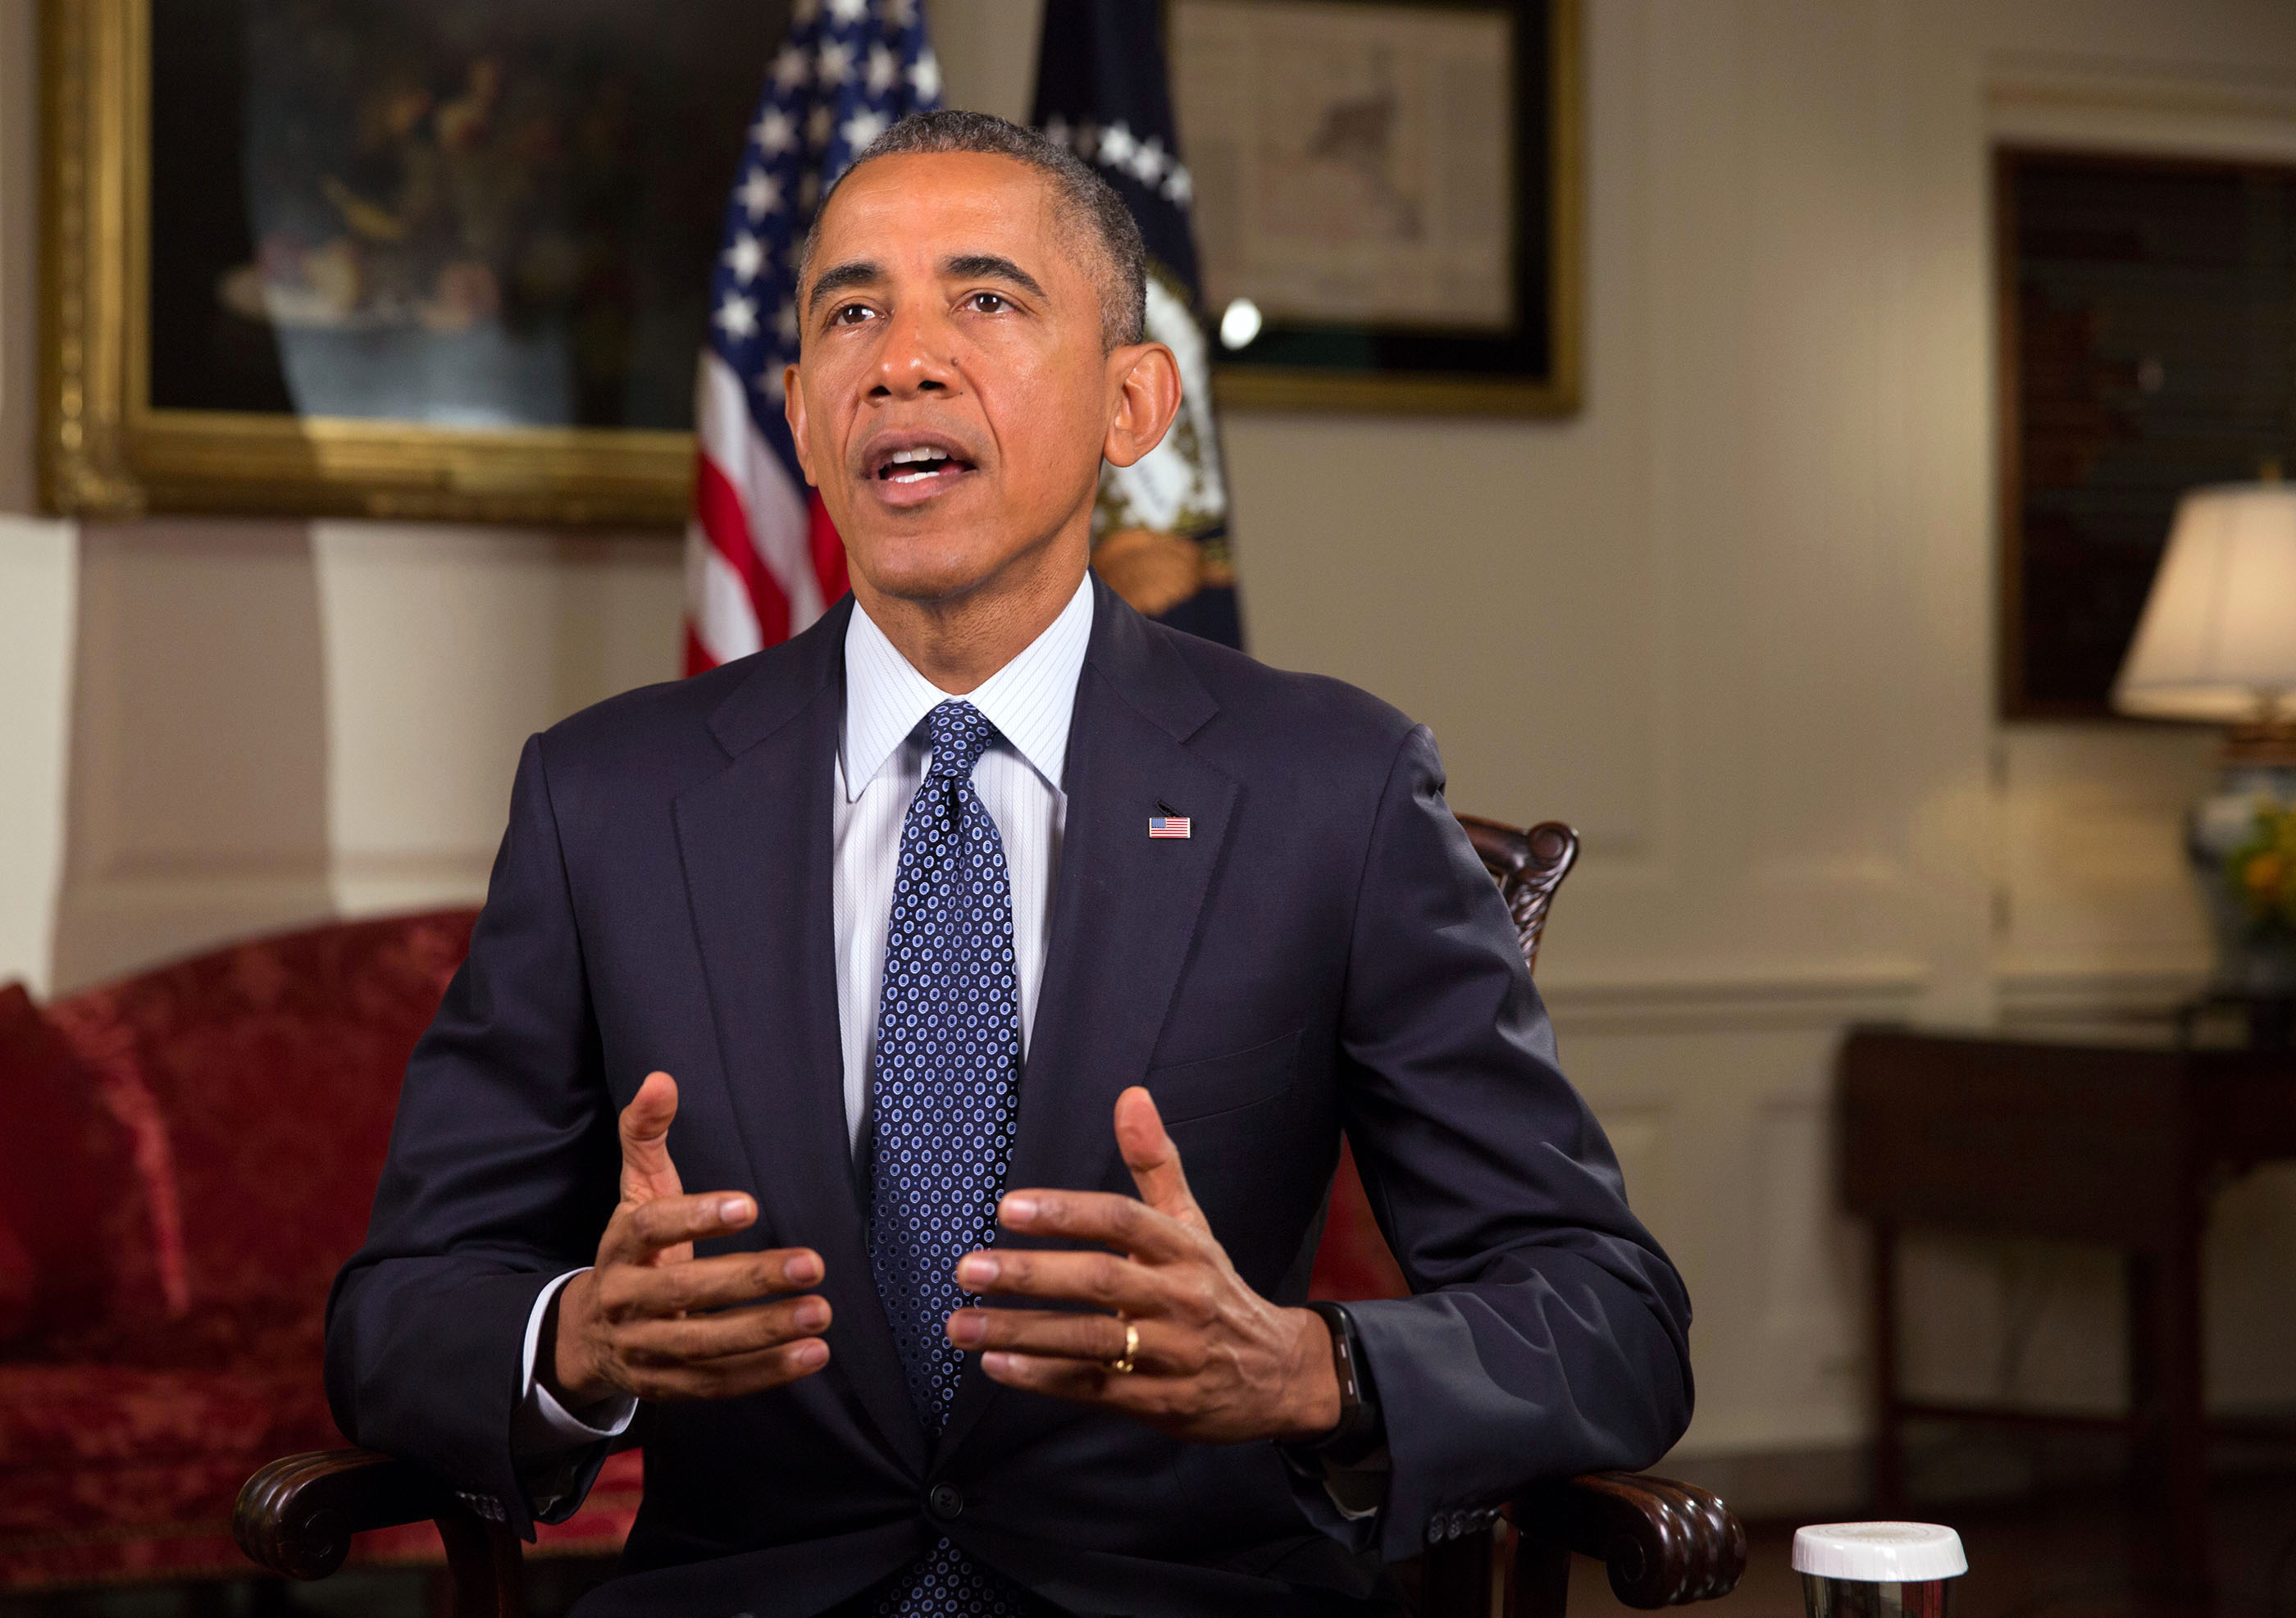 President Obama Tapes the Weekly Address 6.6.15